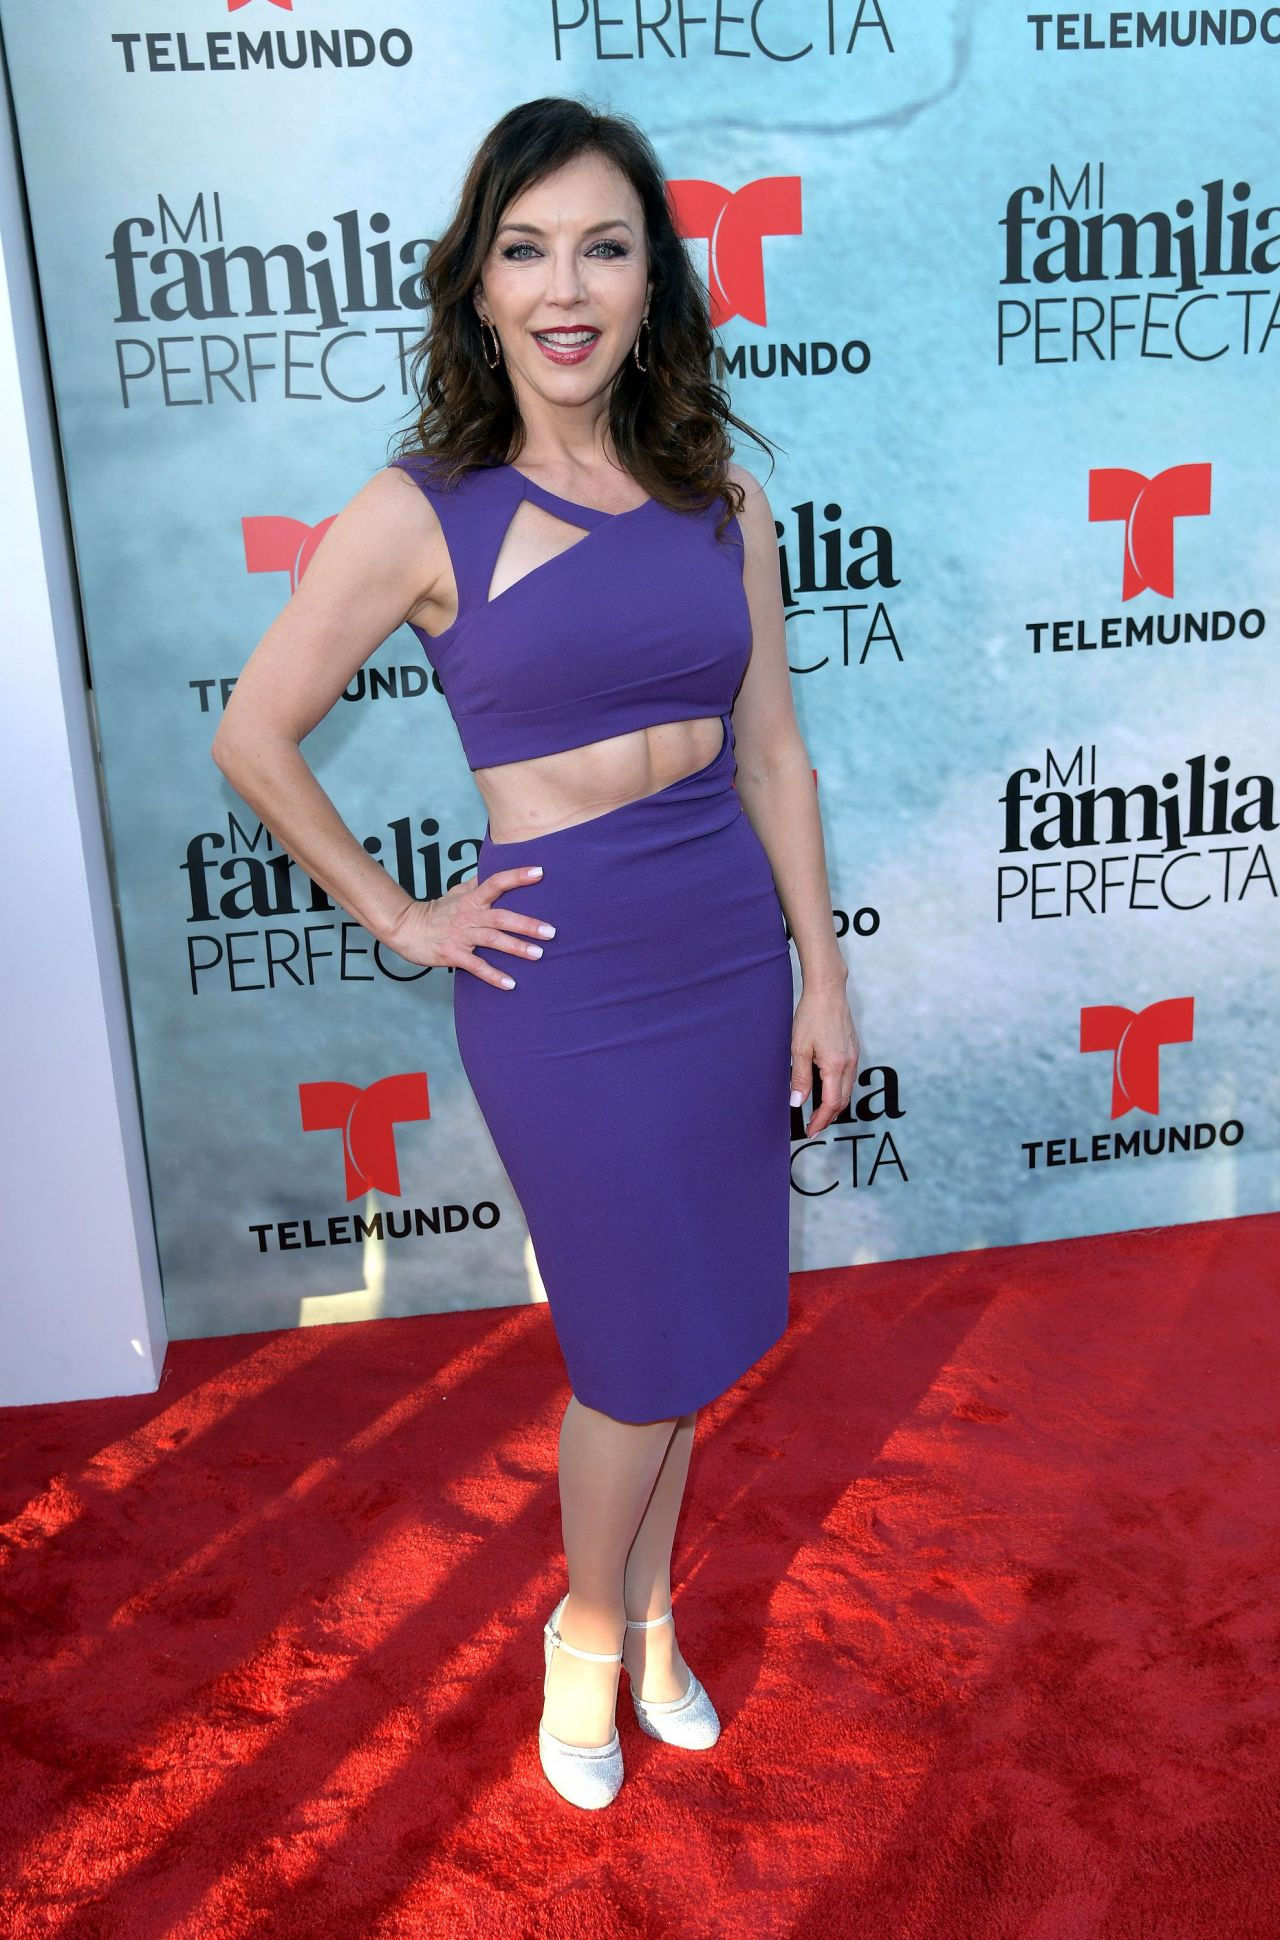 http://celebmafia.com/wp-content/uploads/2018/04/laura-flores-my-perfect-family-tv-show-screening-in-miami-2.jpg